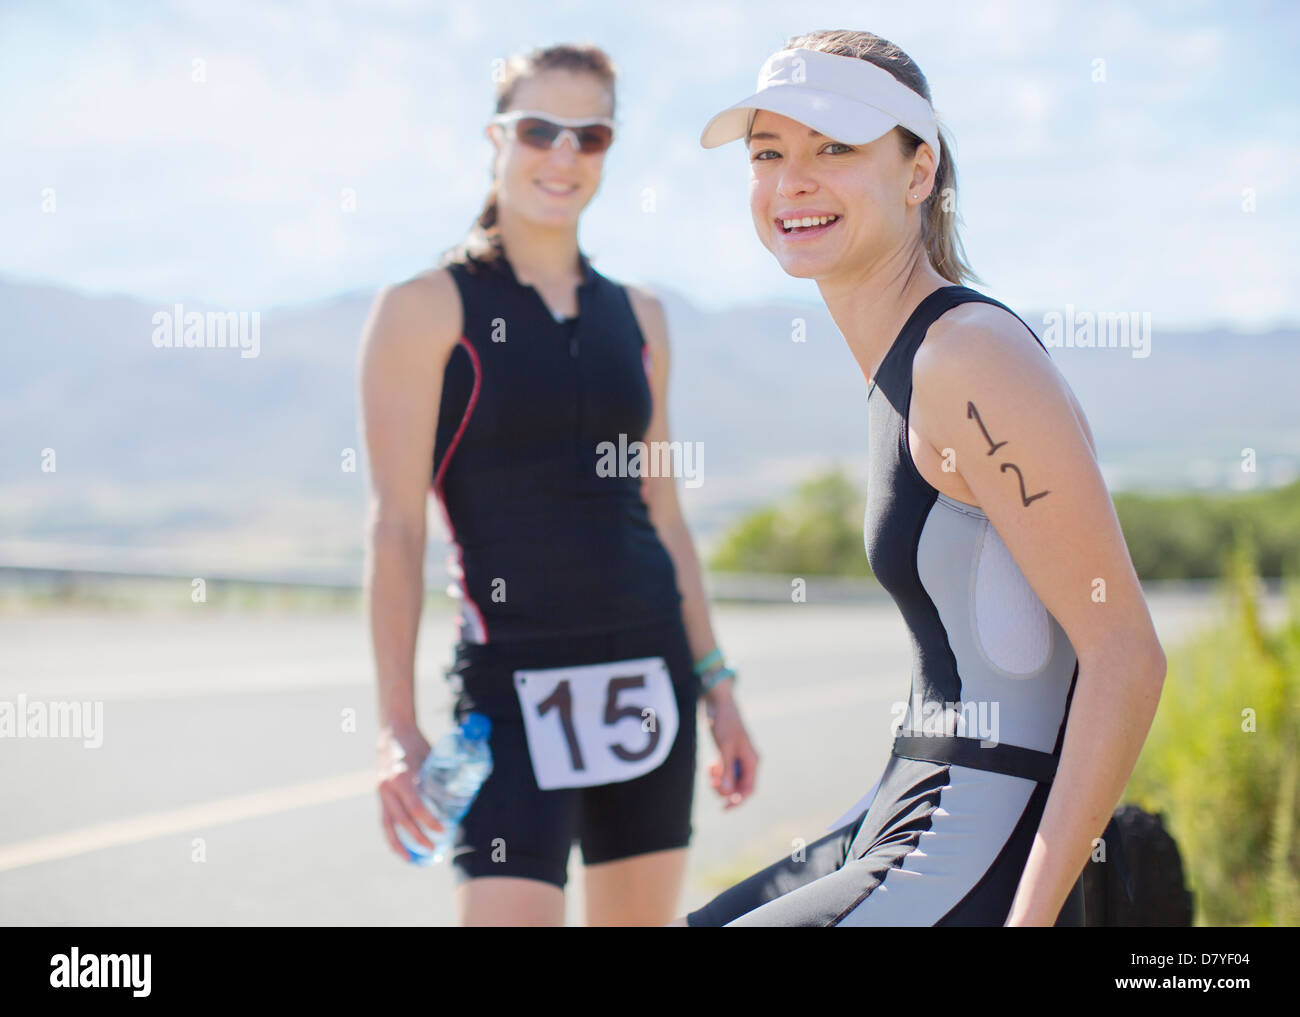 Runners smiling together outdoors - Stock Image